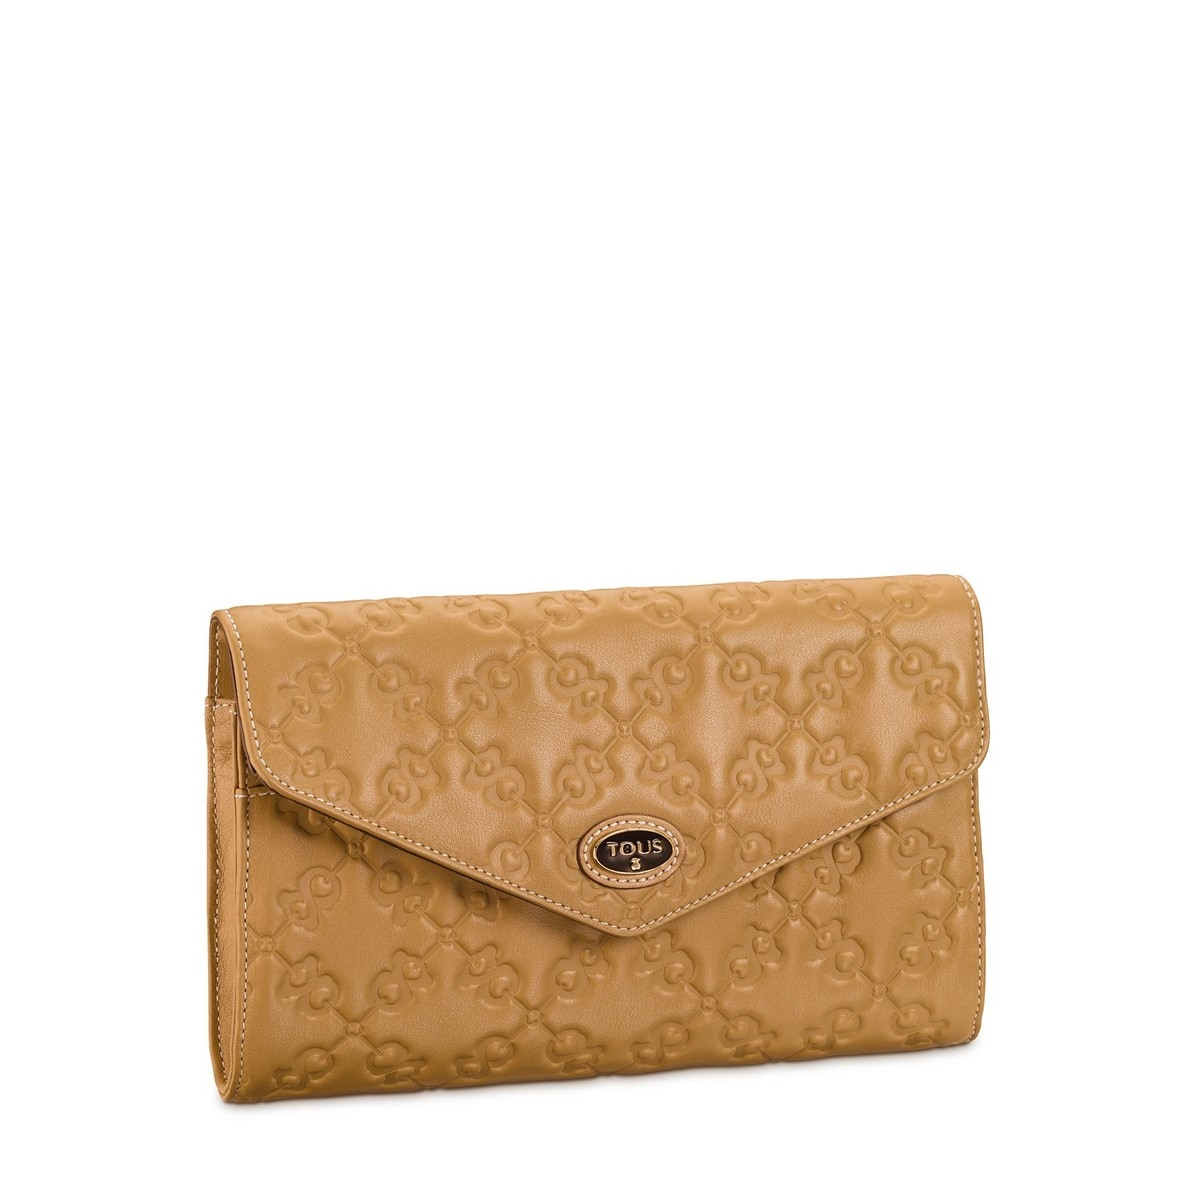 Camel colored Leather Infinit Clutch bag